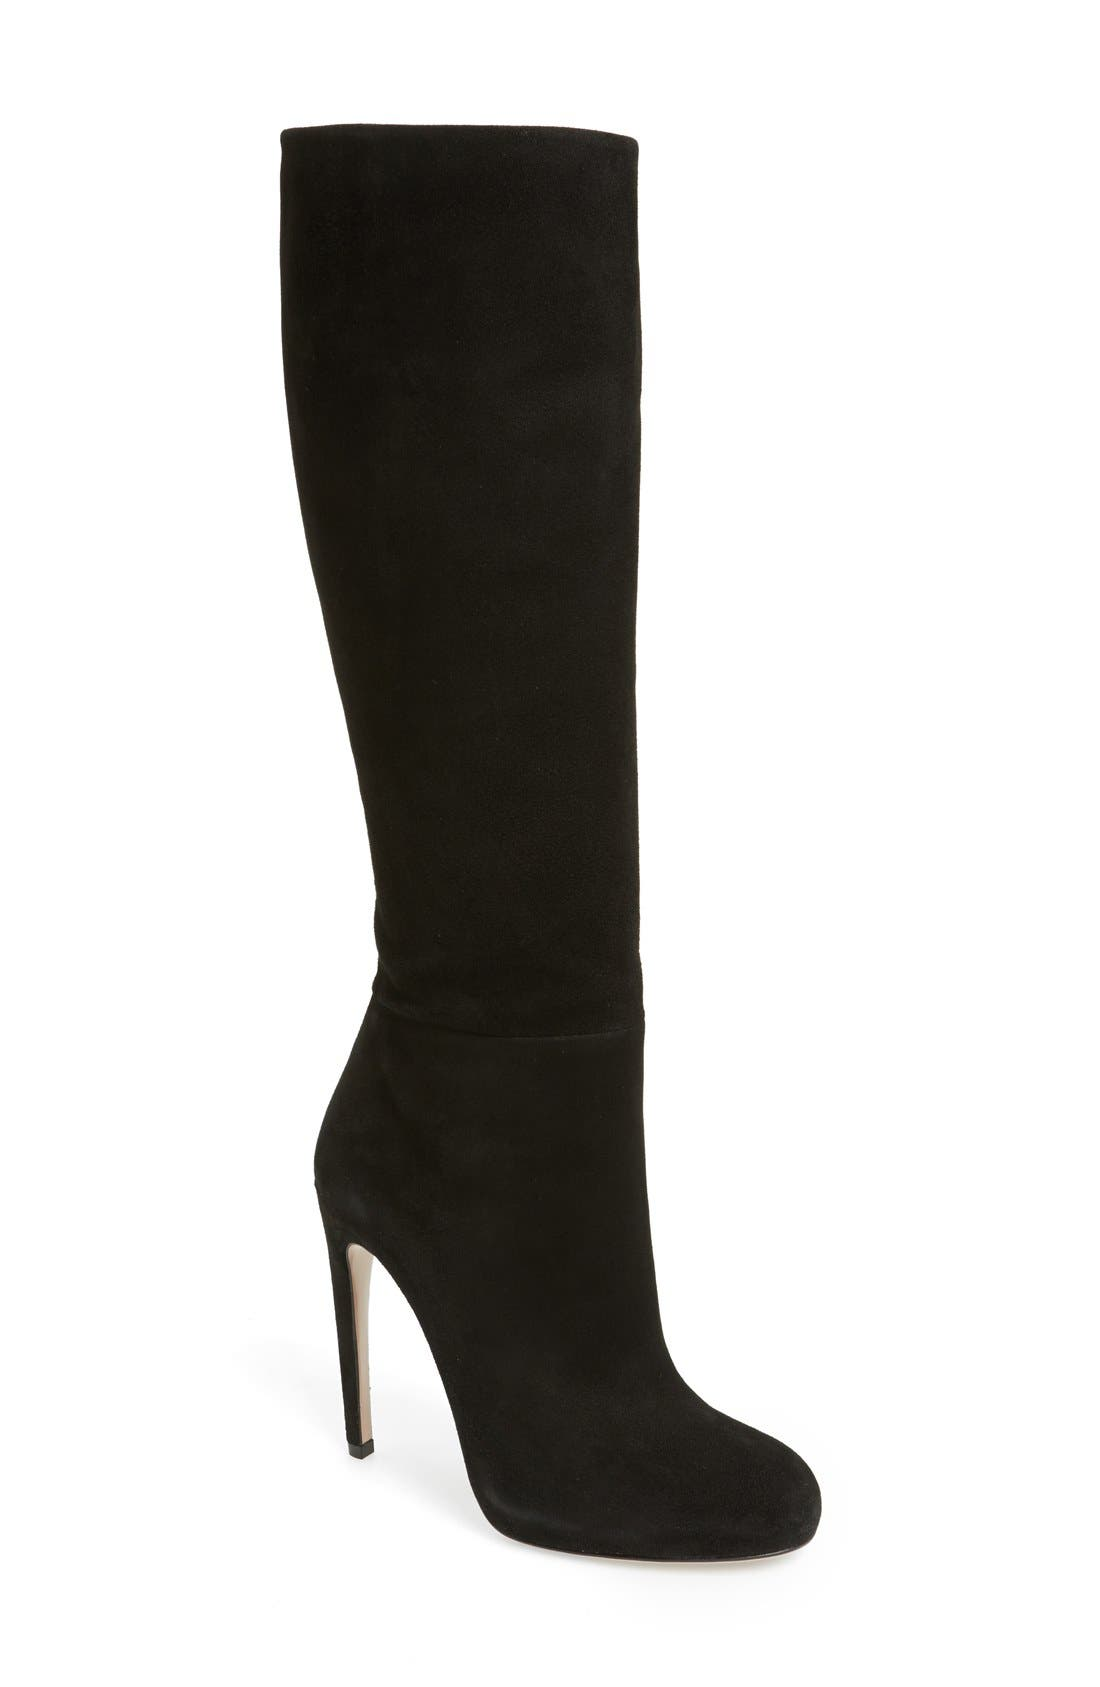 Alternate Image 1 Selected - Gucci 'Goldie' Boot